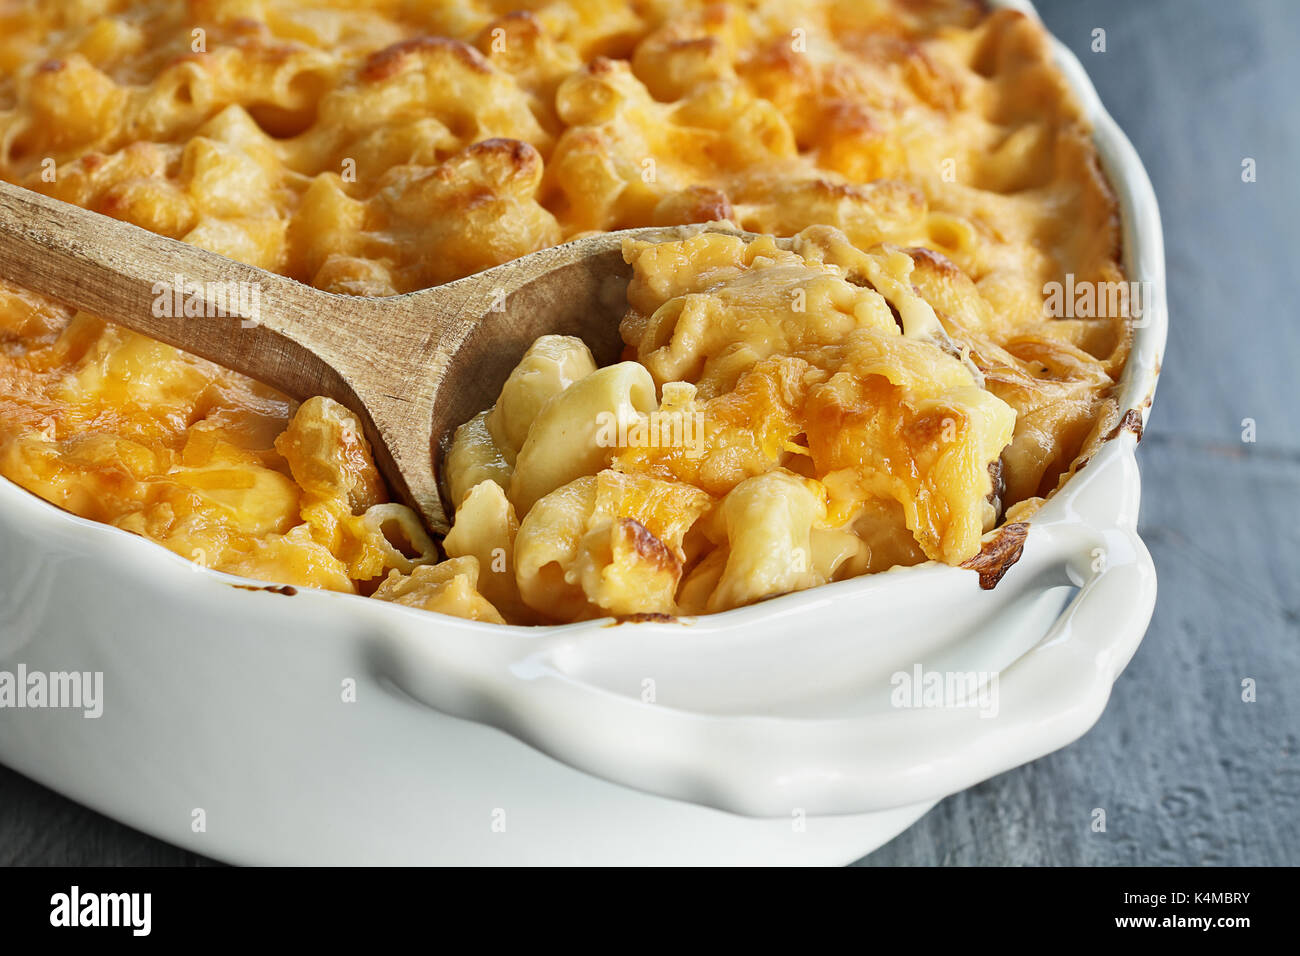 High angel view of a dish of fresh baked macaroni and cheese with a wooden spoon over a rustic dark background. - Stock Image